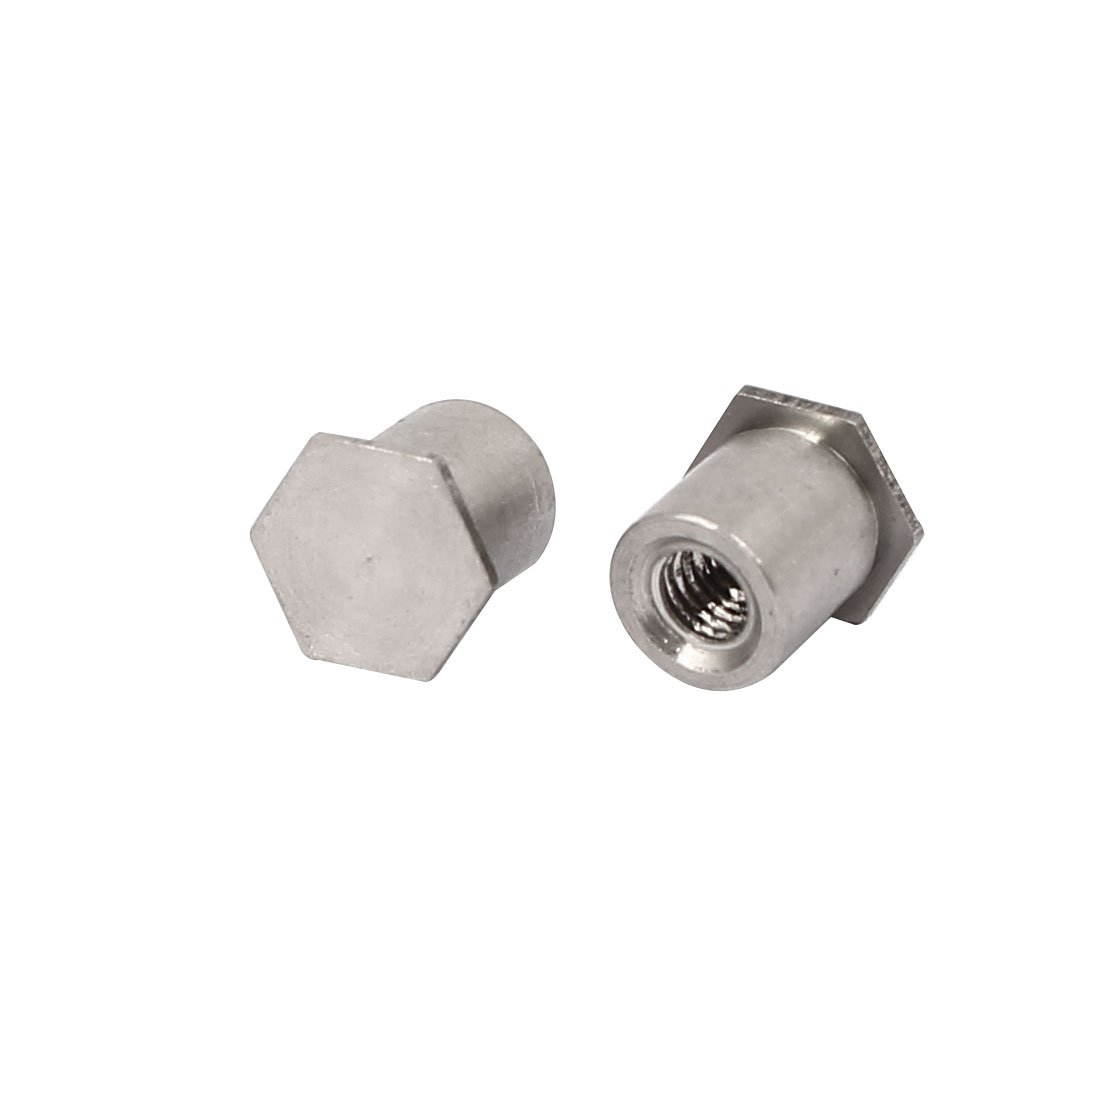 uxcell M3x6mm Blind Hole Hex Head 304 Stainless Steel Self Clinching Standoff 20pcs